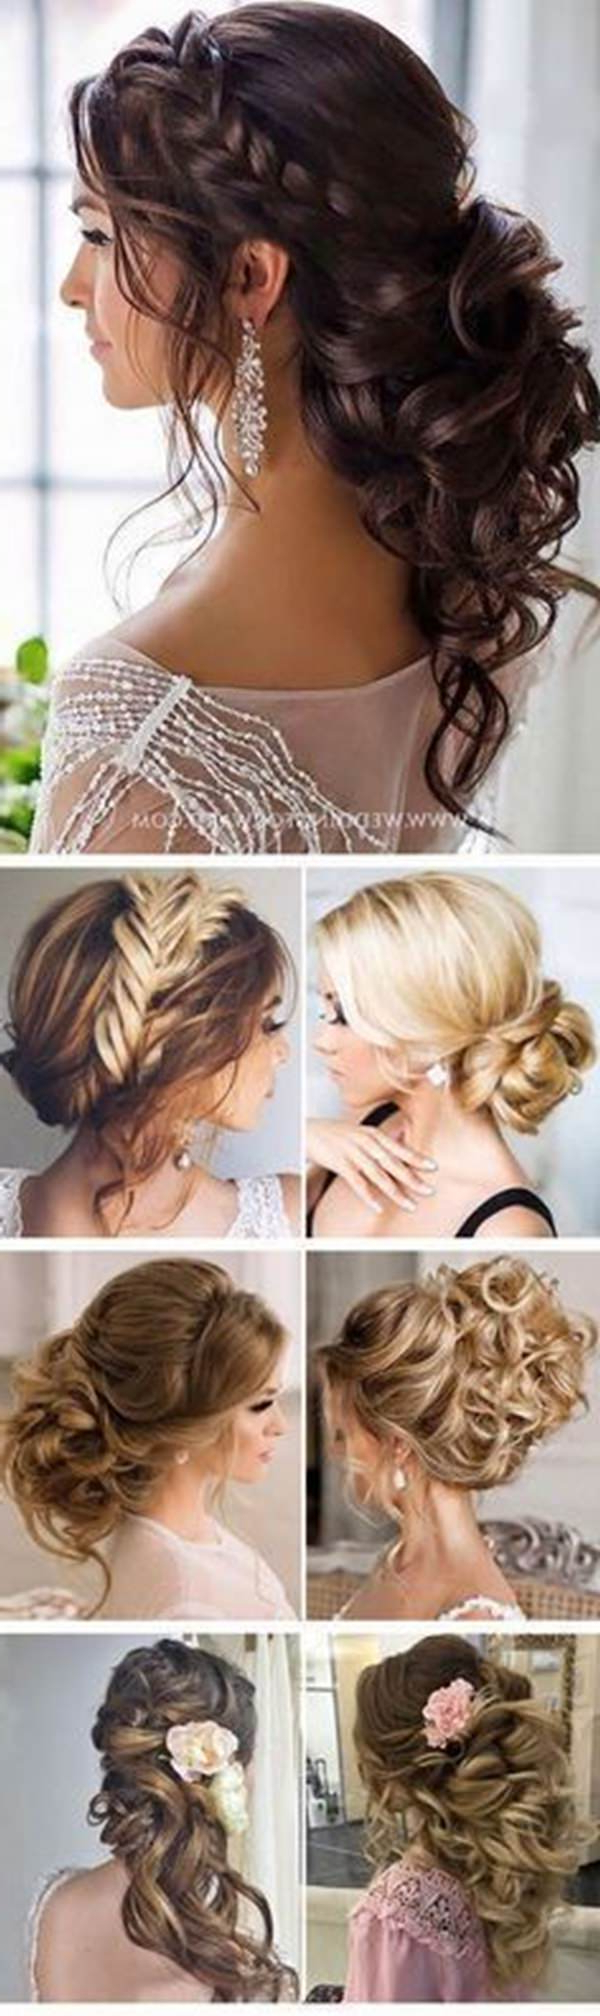 154 Updos For Long Hair Featuring Beautiful Braids And Buns In Most Up To Date Low Pearled Prom Updos (Gallery 20 of 20)